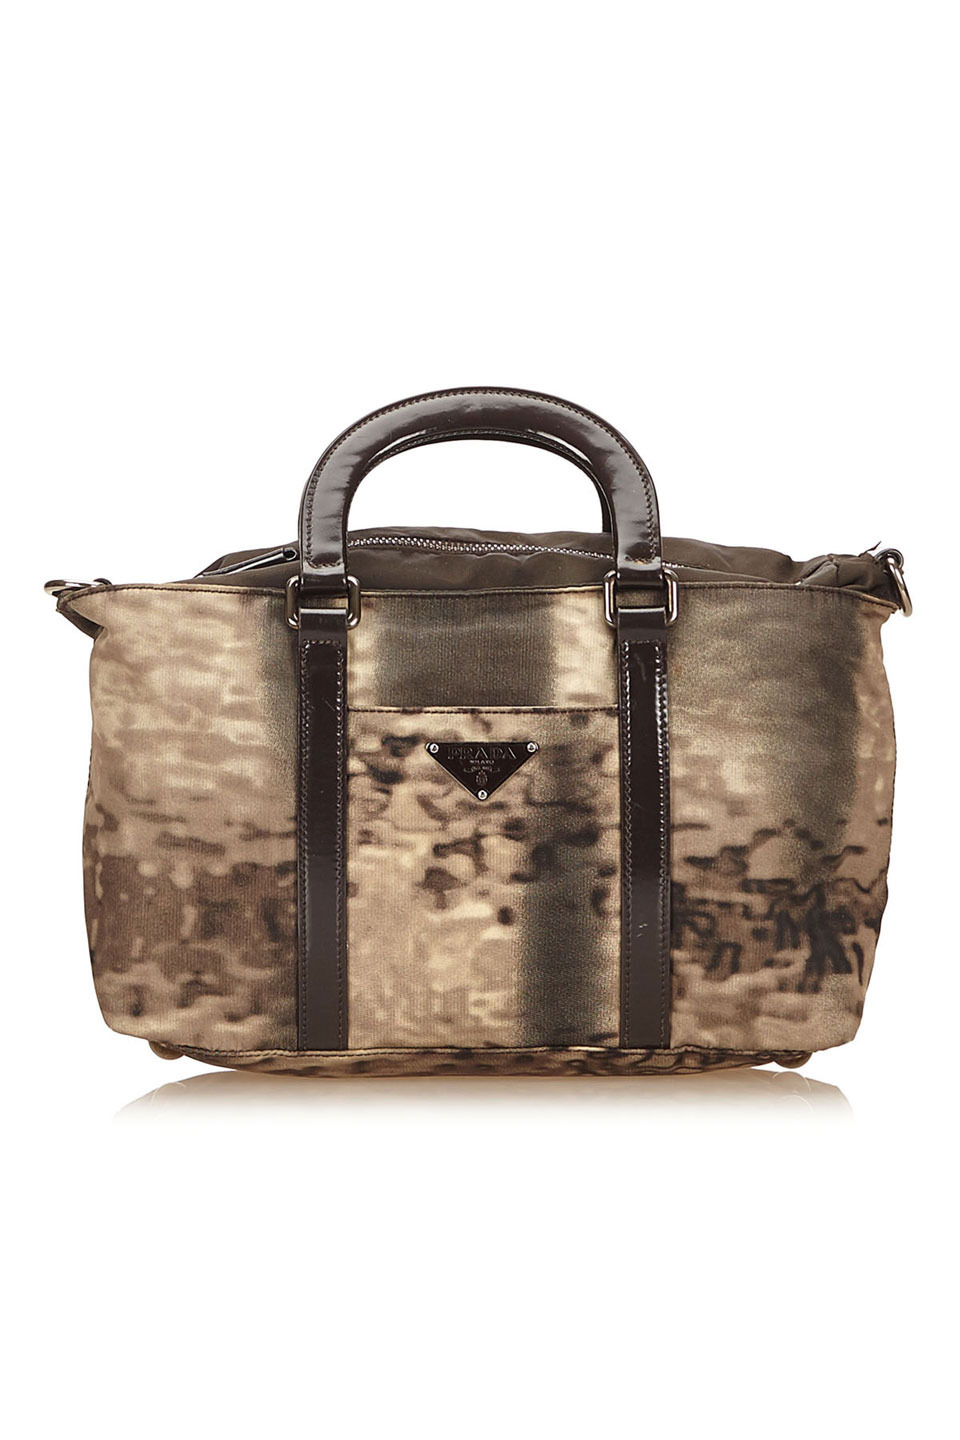 Prada Nylon Handbag in Brown and Dark Brown